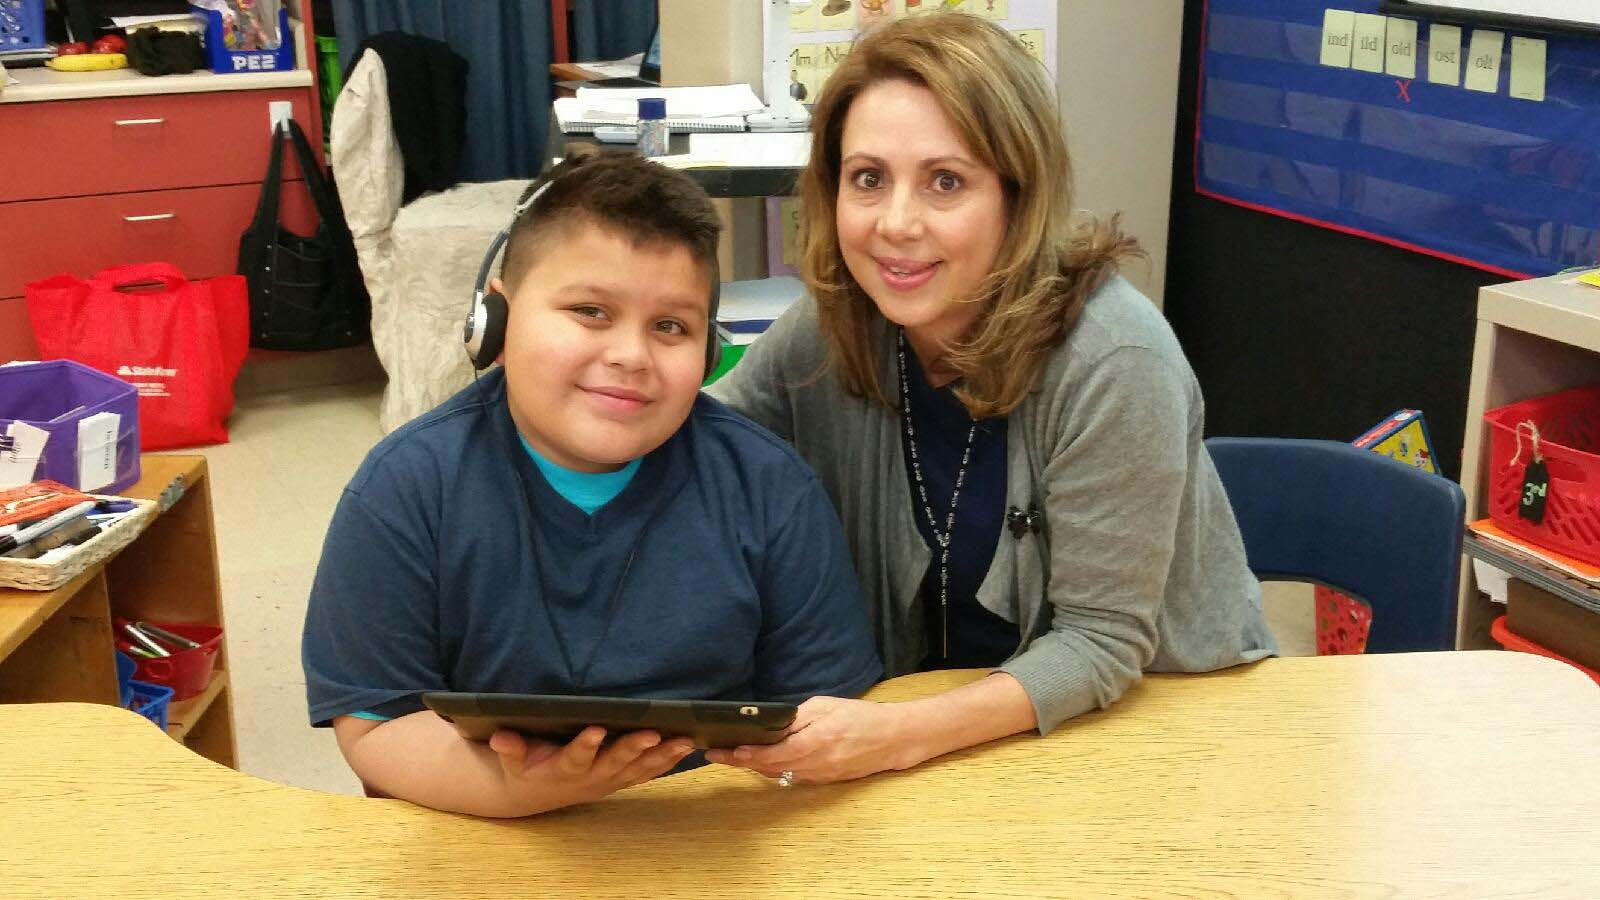 Mrs. Reyes sitting with a student in class. He has headphones on and is reading a tablet.